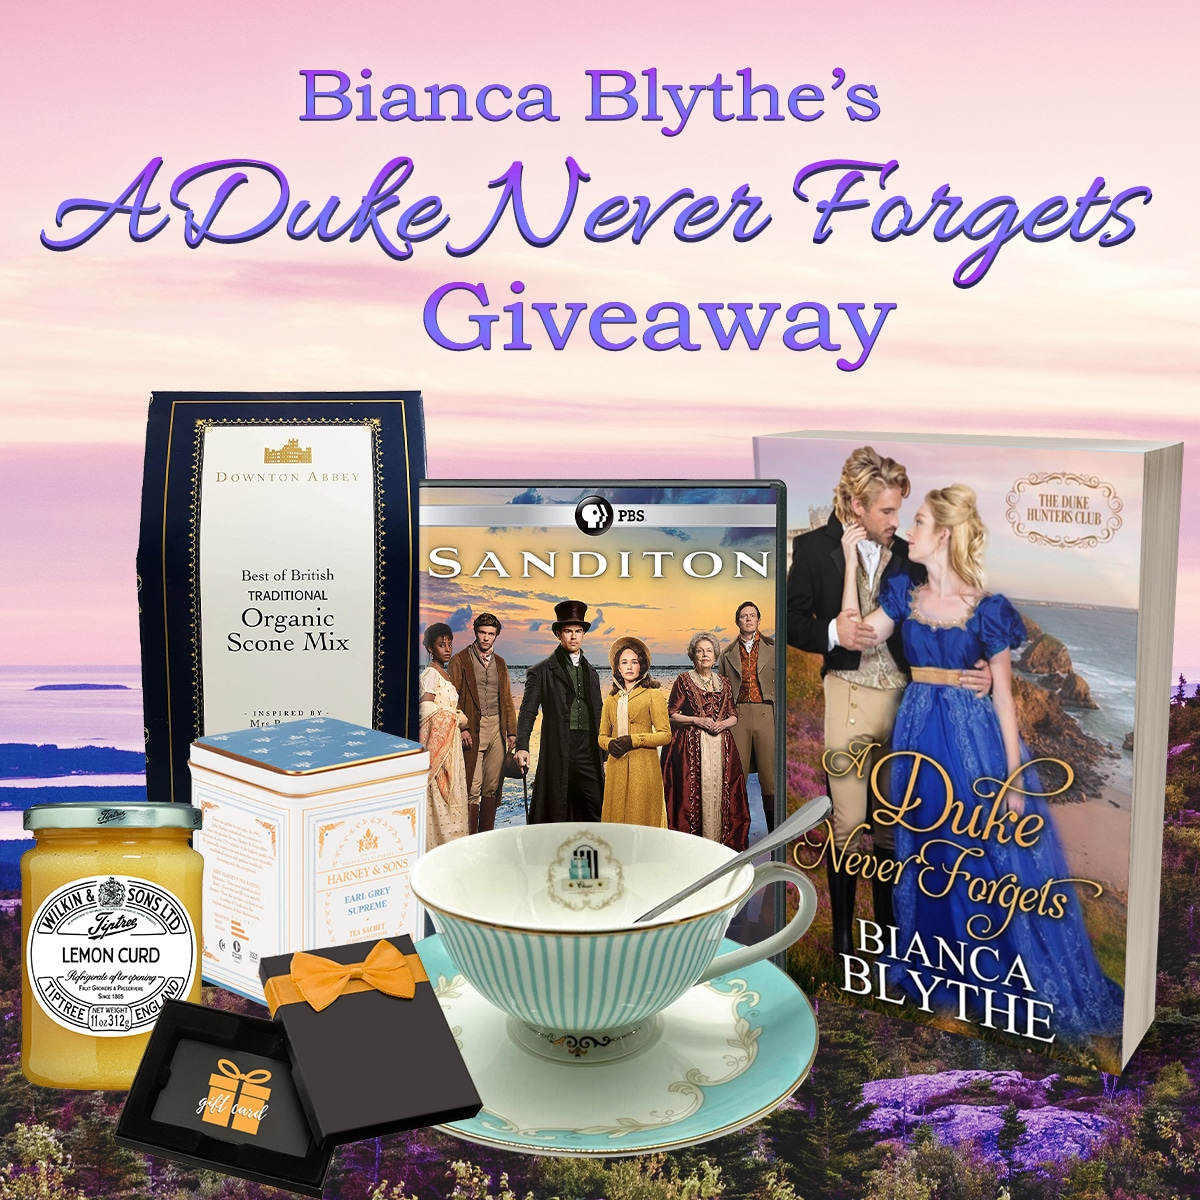 Enter to win a copy of PBS Masterpiece: Sanditon on DVD, tea, lemon curd, traditional scone mix, a fine china teacup, and the first signed paperback copy of A Duke Never Forgets. Giveaway Image